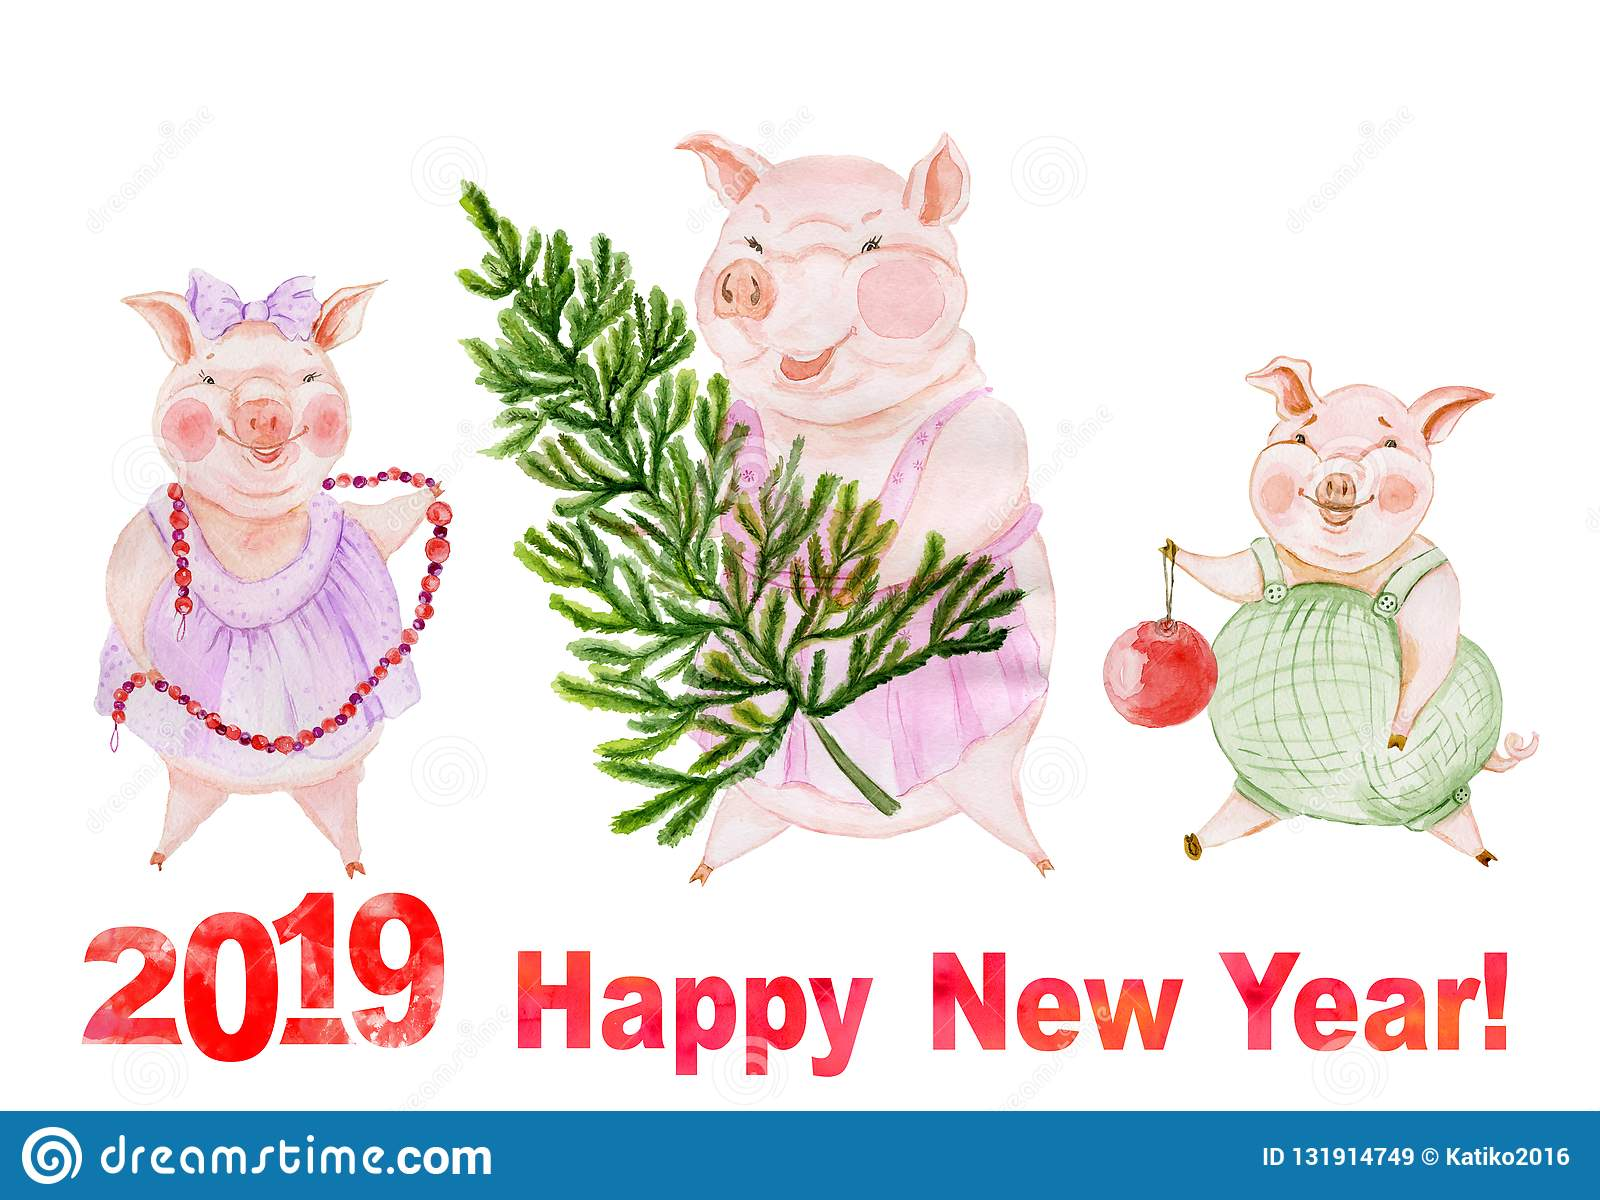 funny family of pigs are going to decorate christmas tree greeting card with happy new